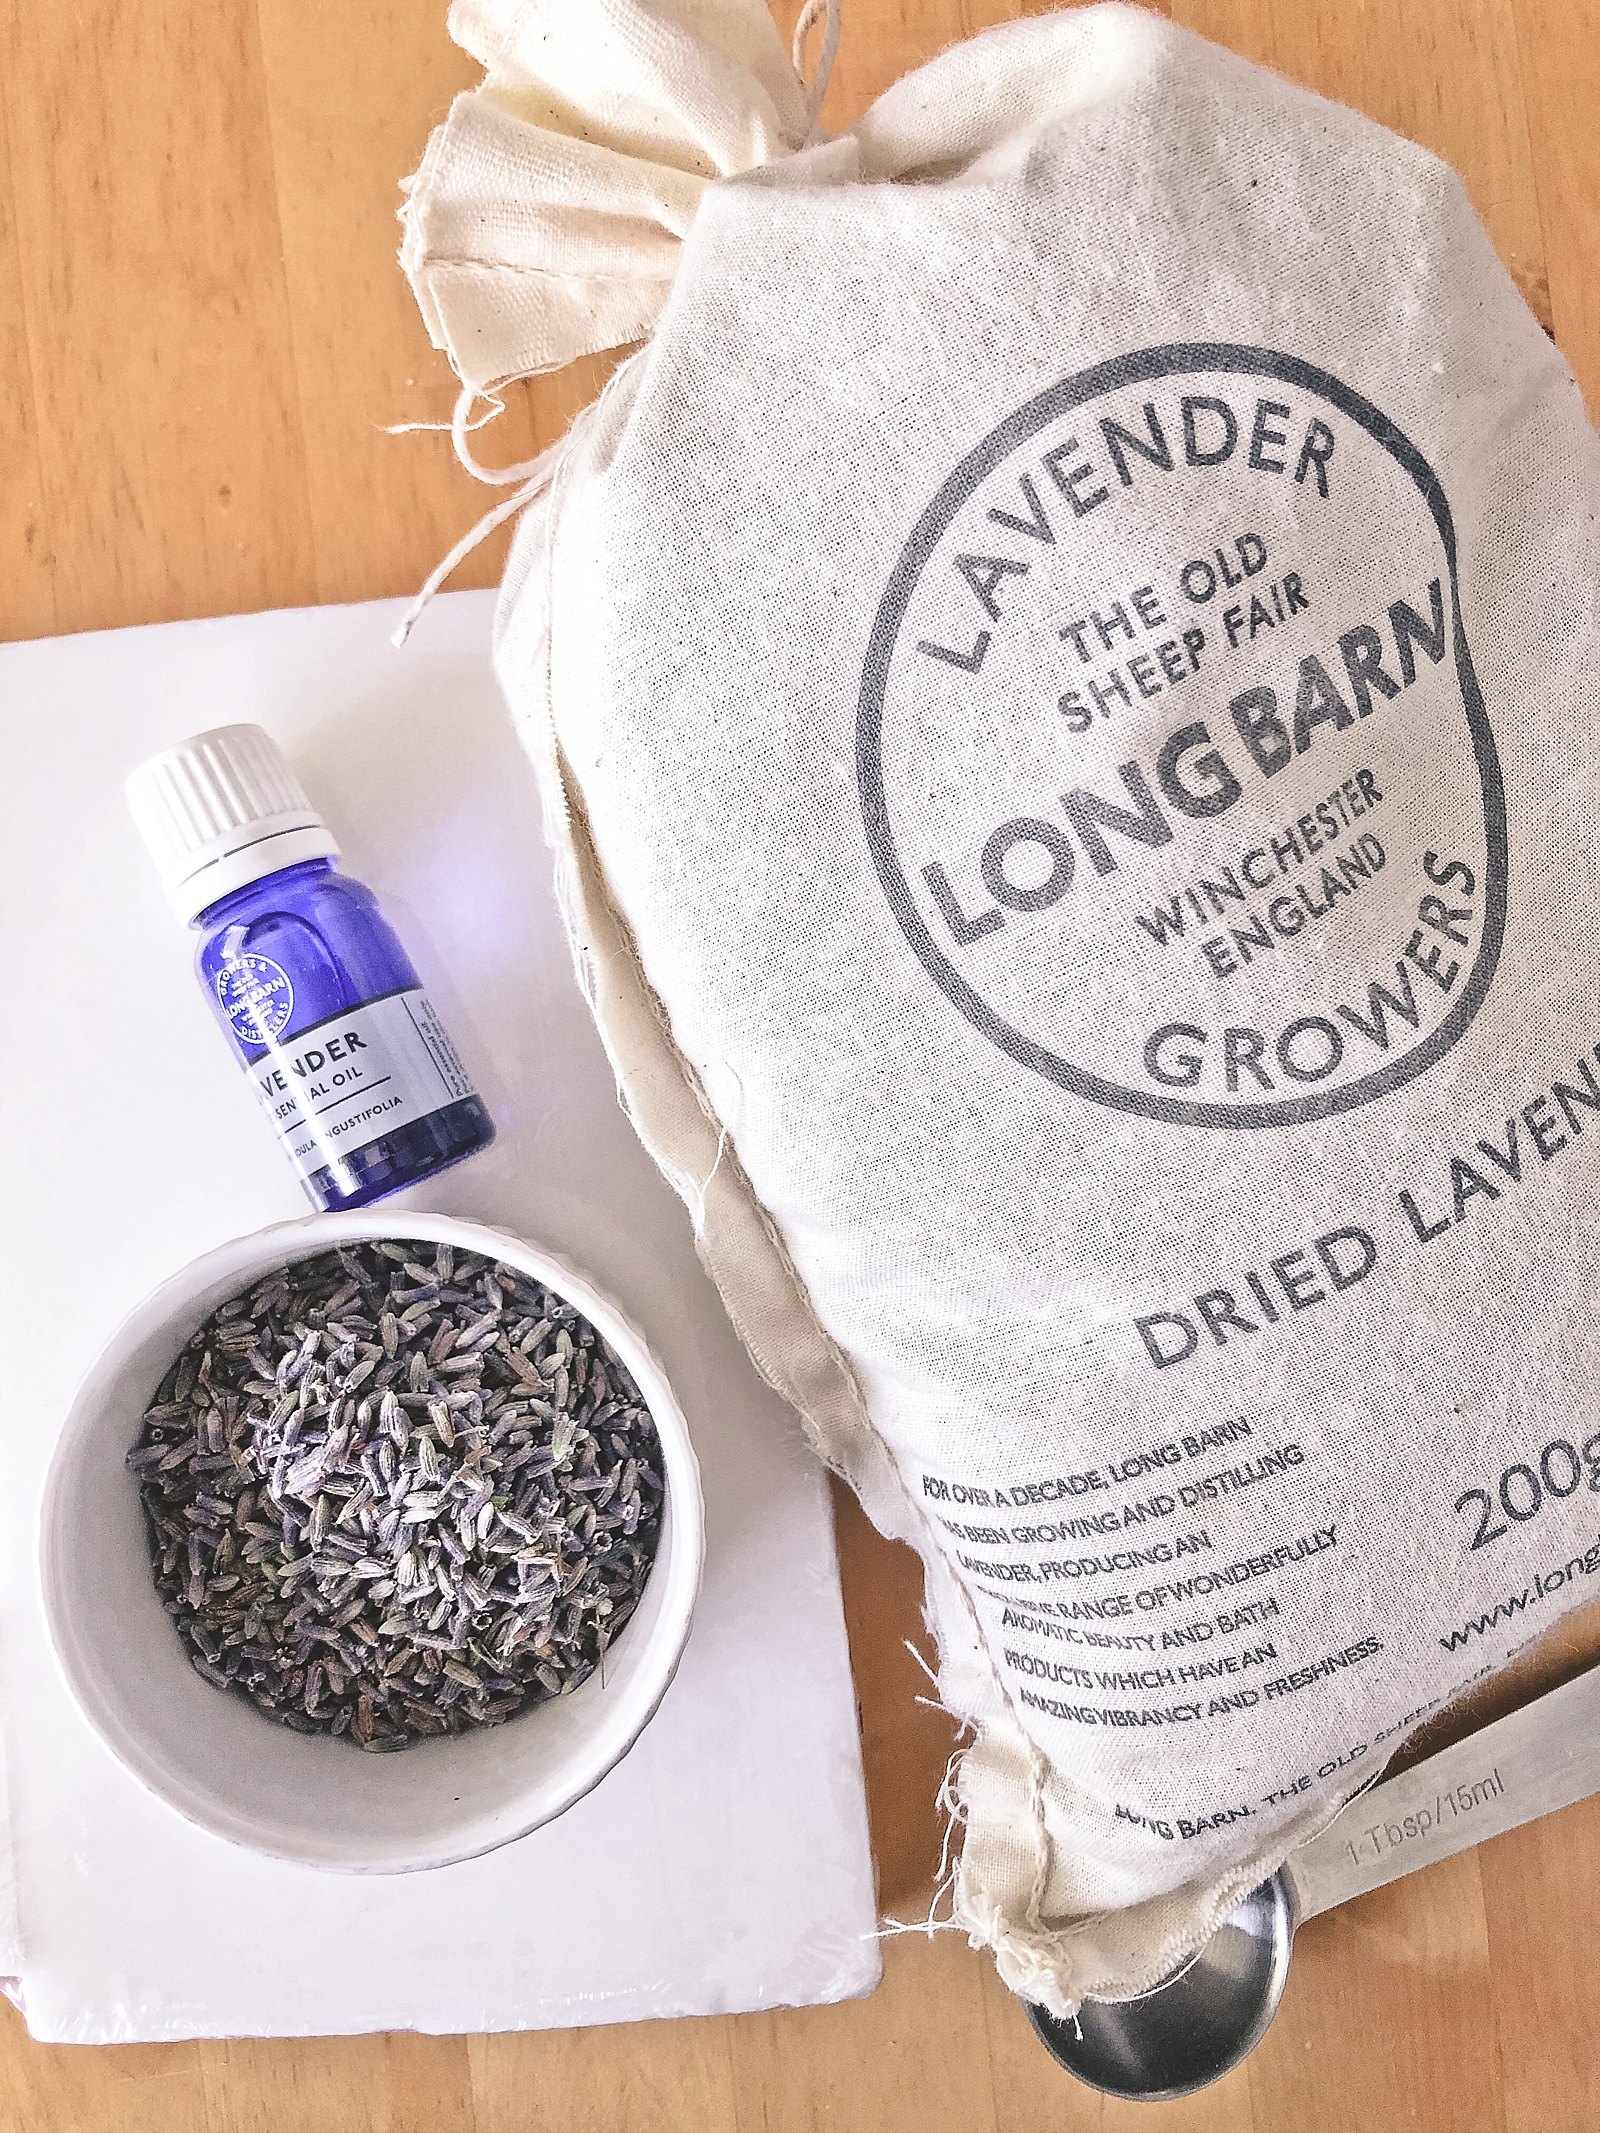 Easy make your own soap with English lavender from Long Barn UK